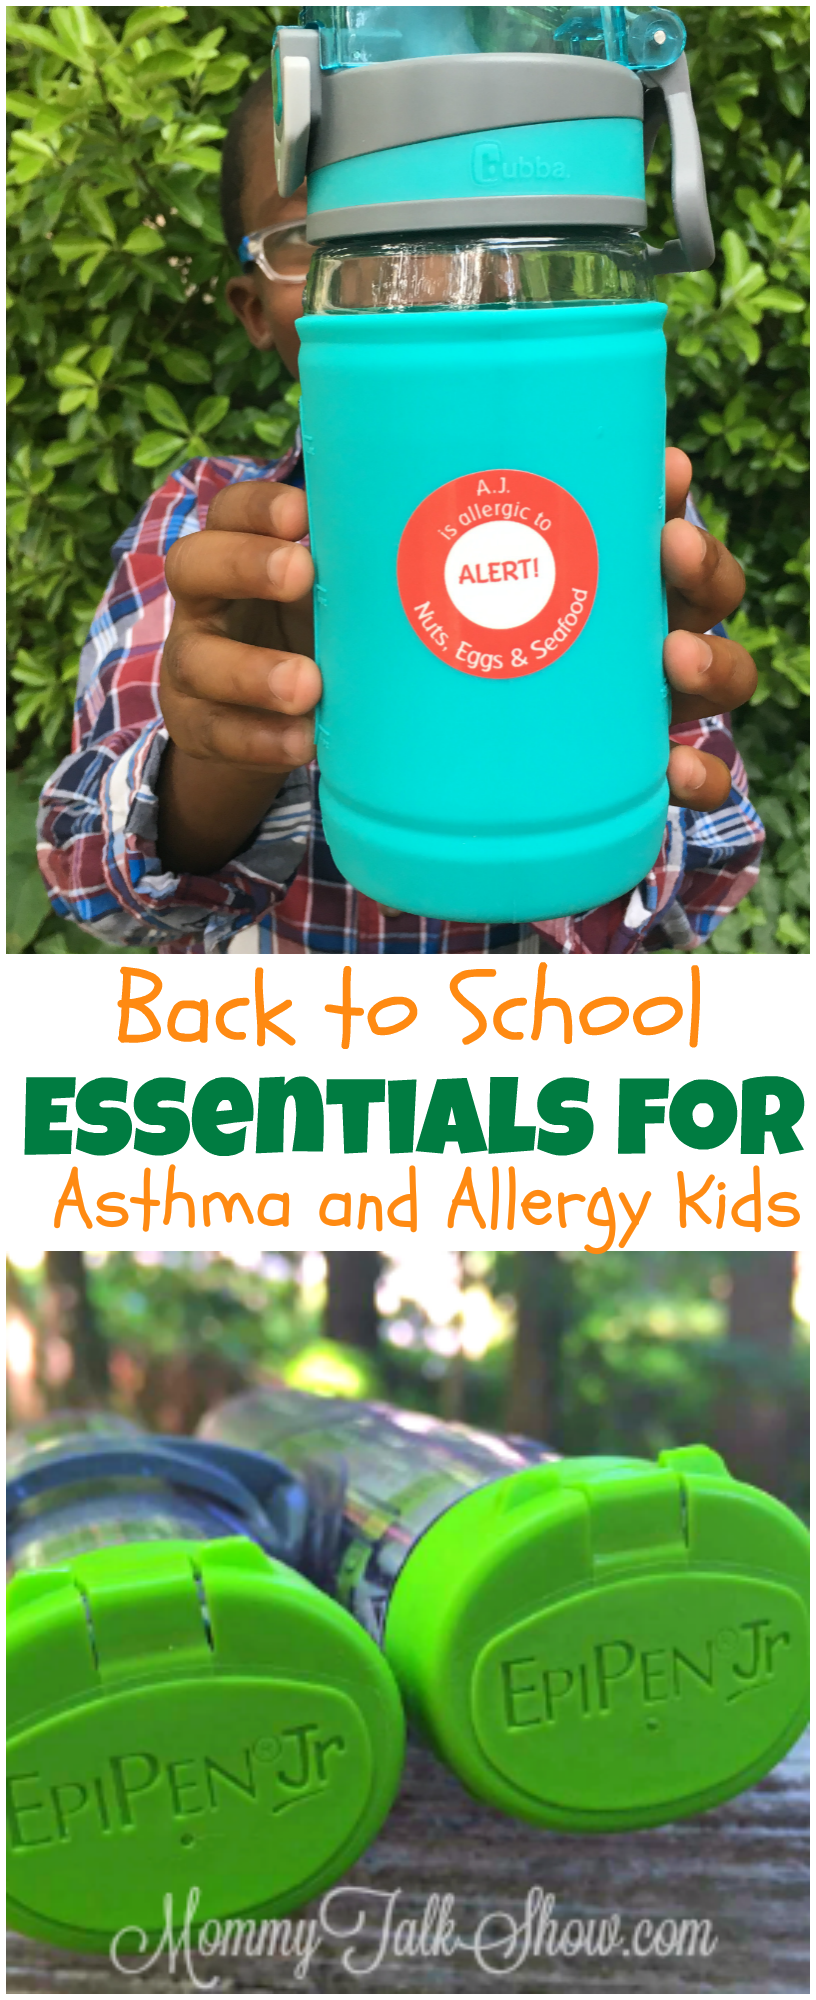 Back to School Essentials for Asthma and Allergy Kids